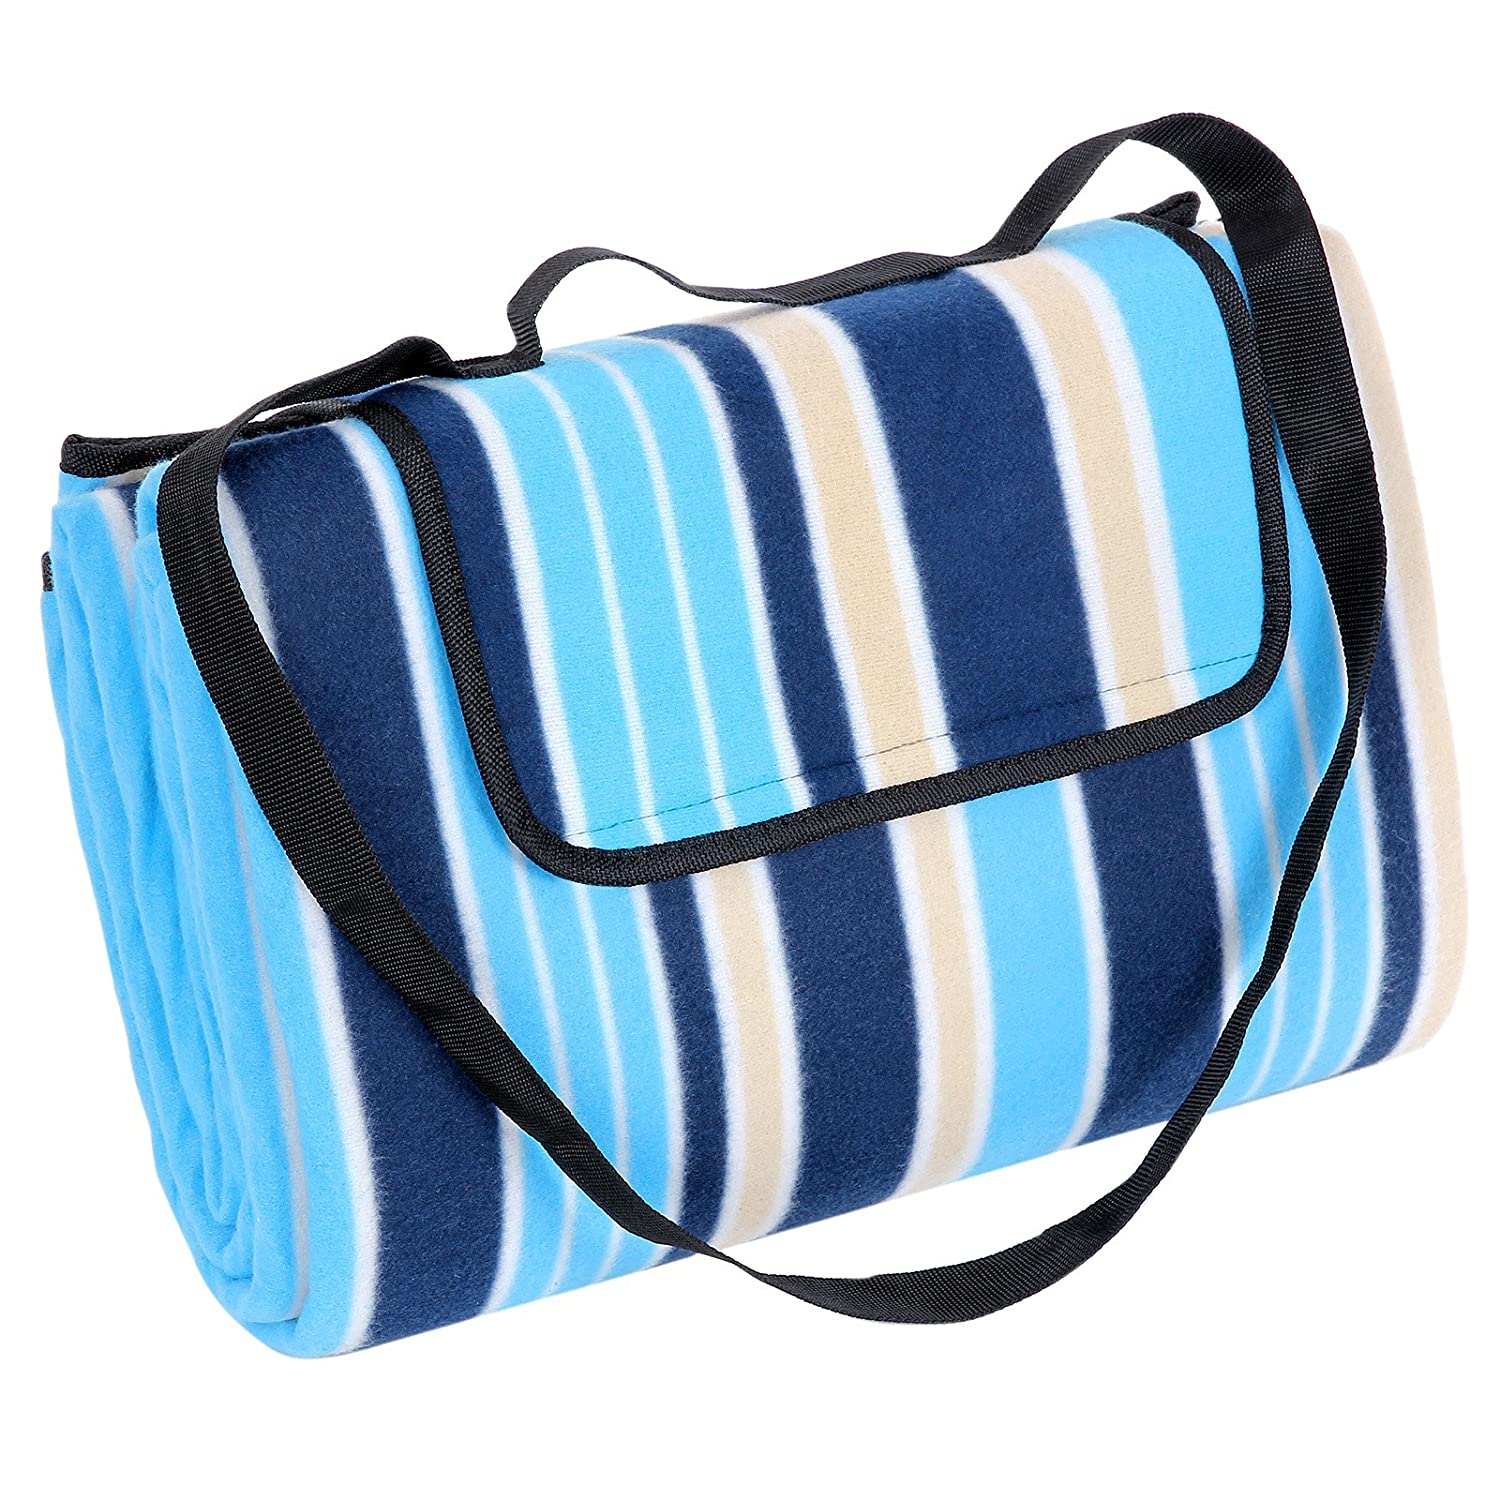 Travel 64 x 76 inches Fast Dry Fits Two Camping Sand Free Sport XL Beach Towel Microfiber Beach Blanket//Outdoor Picnic Blankets Corner Anchor Pockets